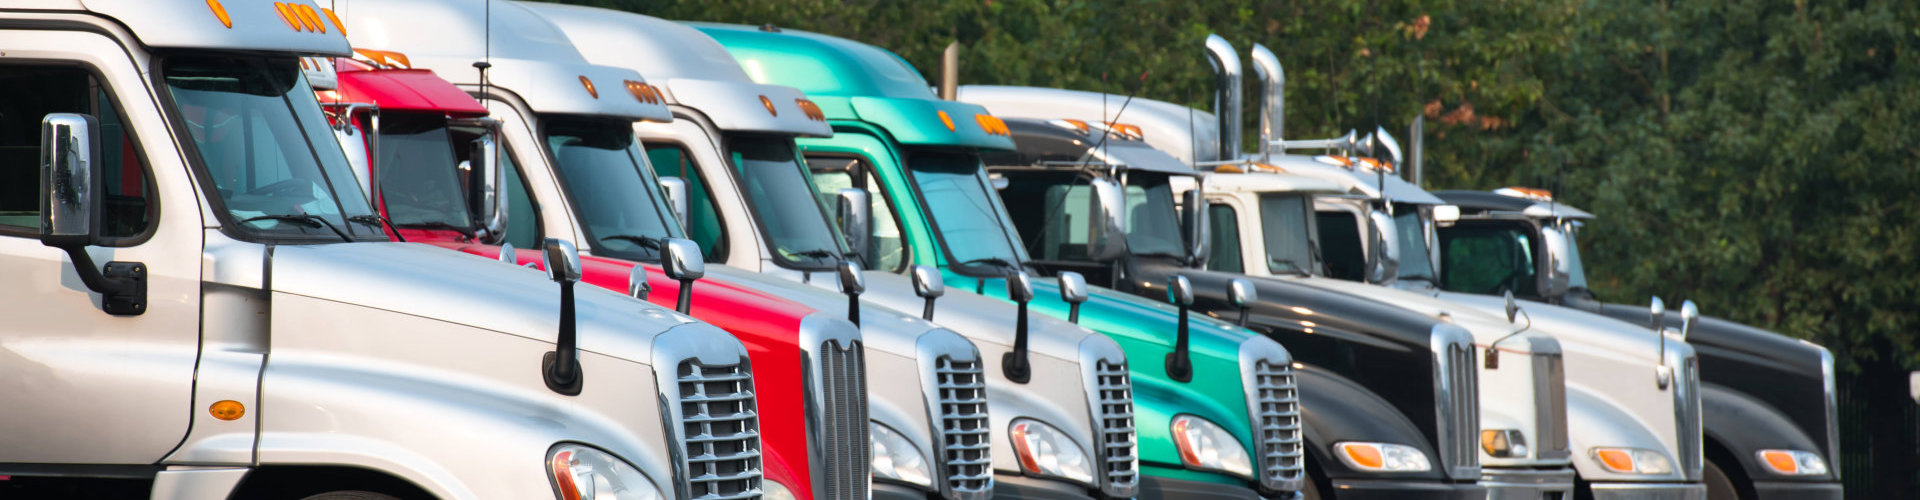 a row of freight trucks